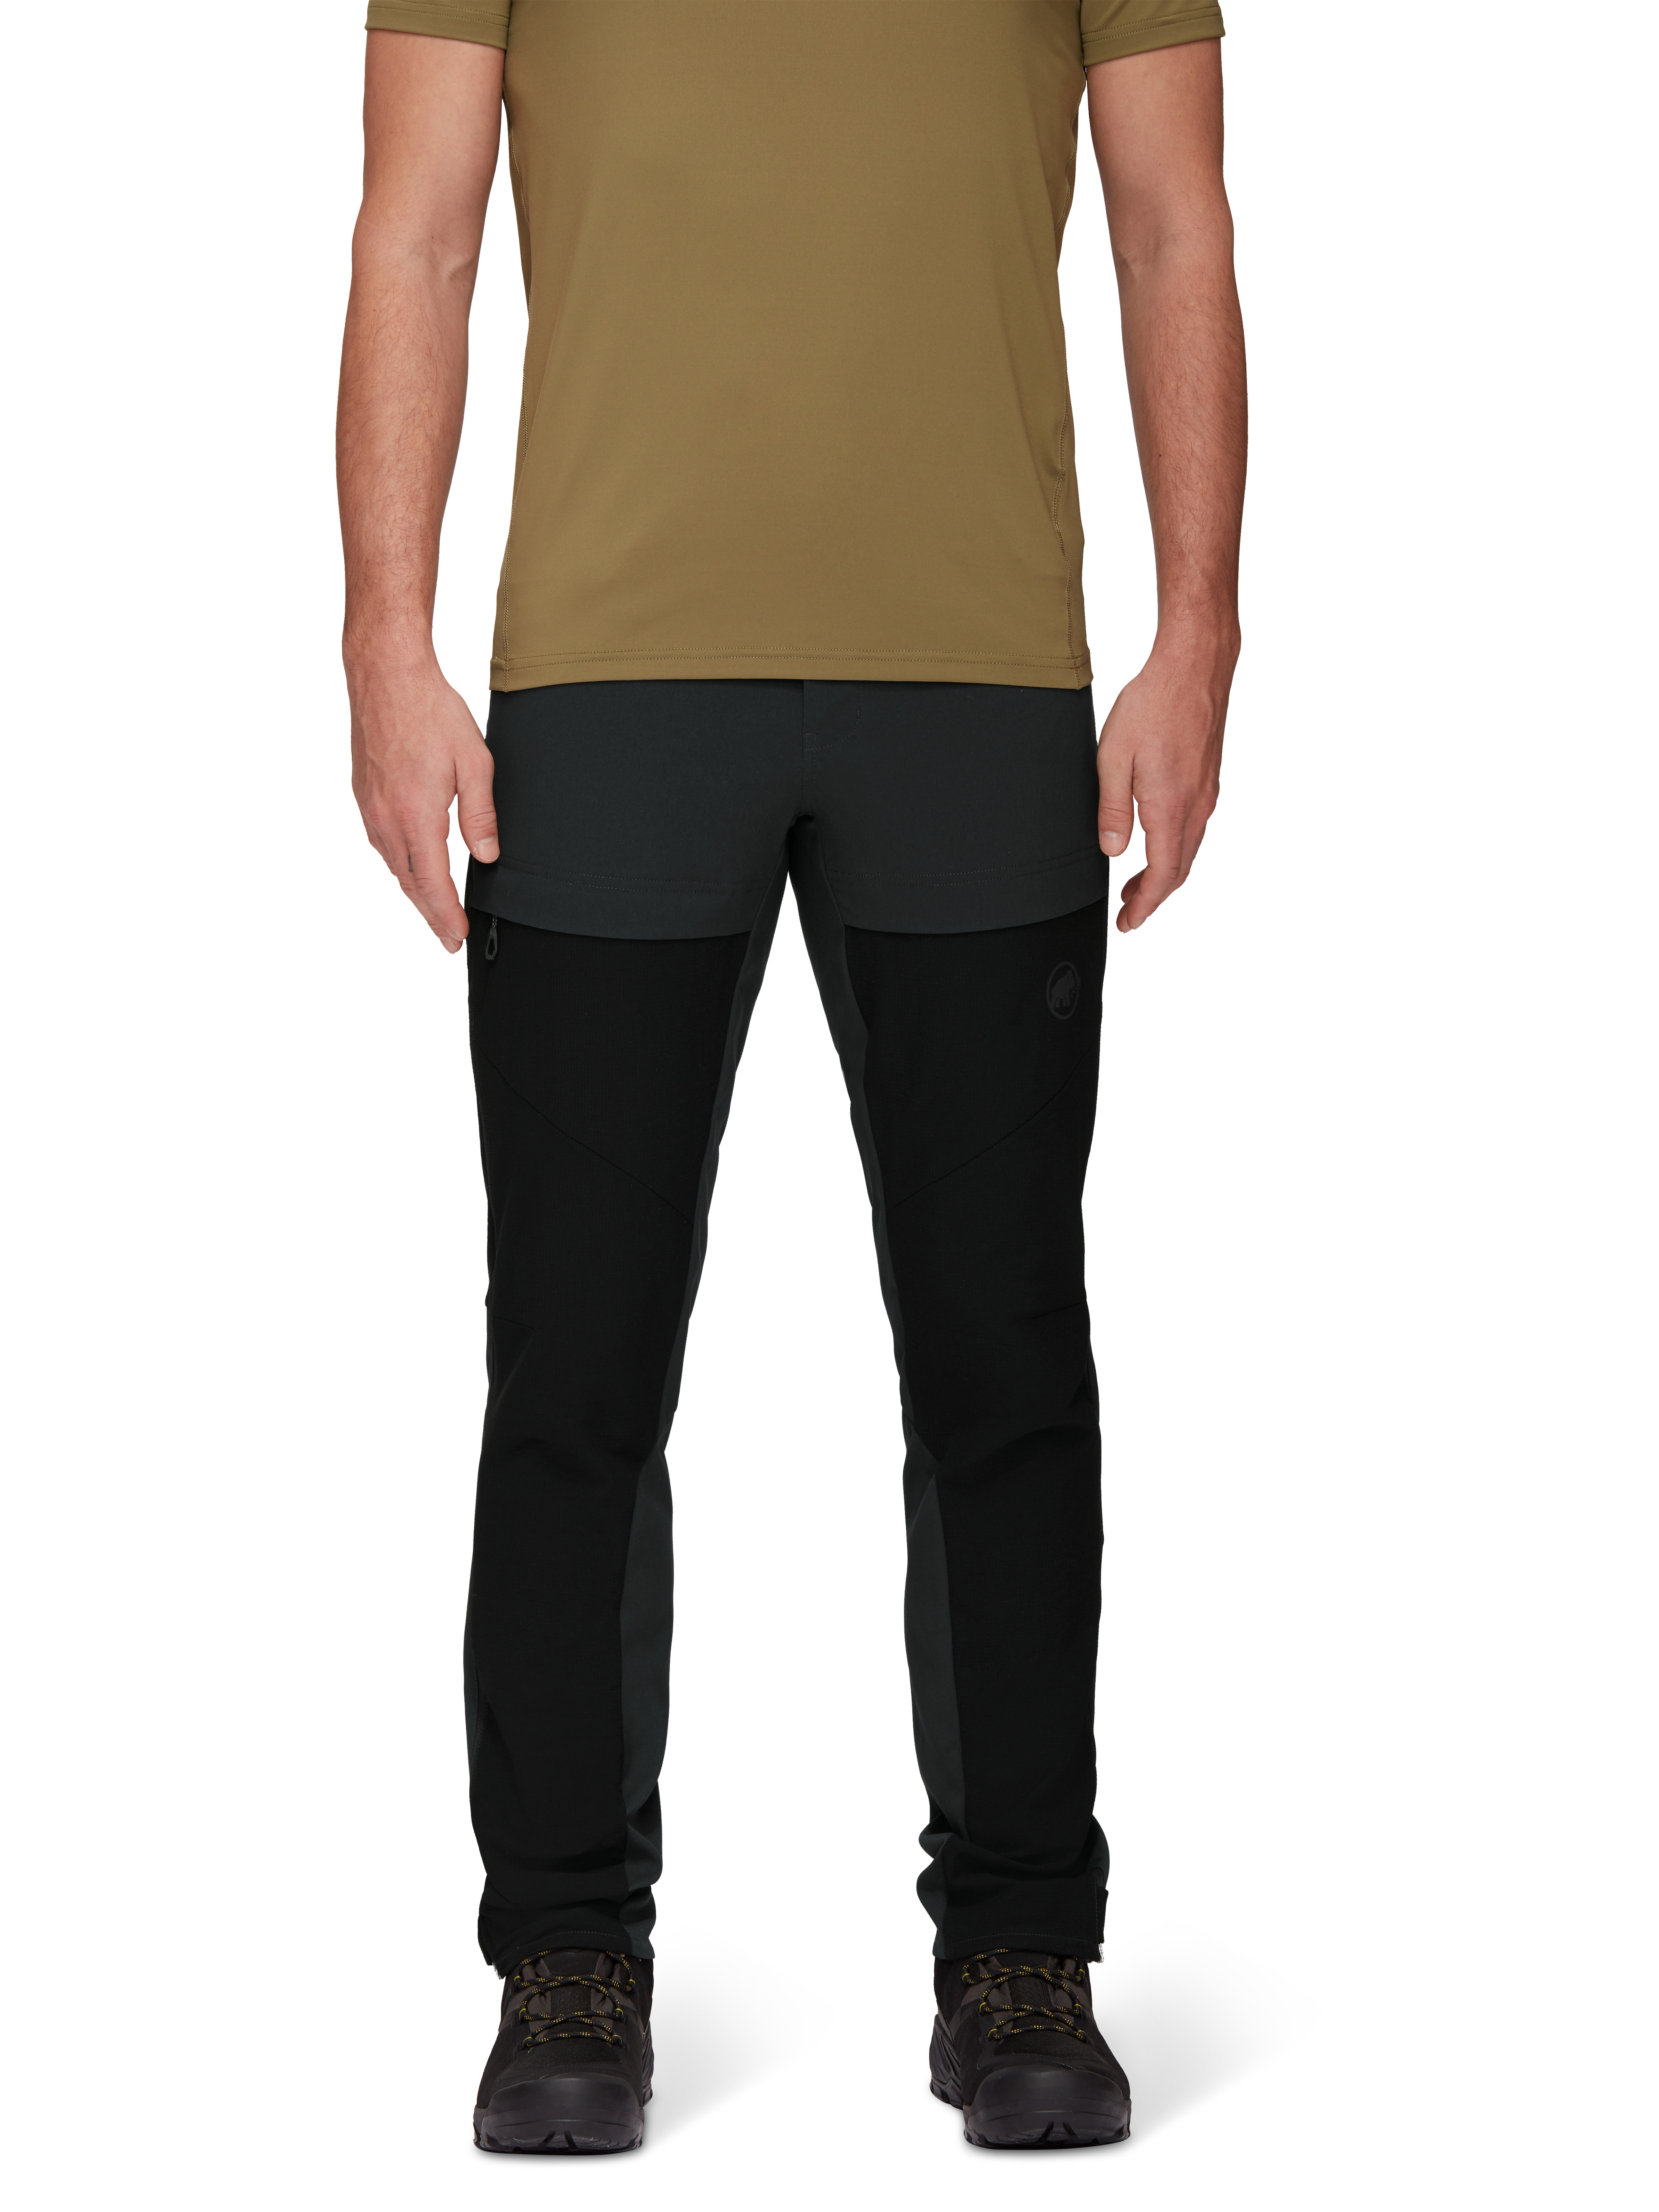 Zinal Guide Pants Men product image